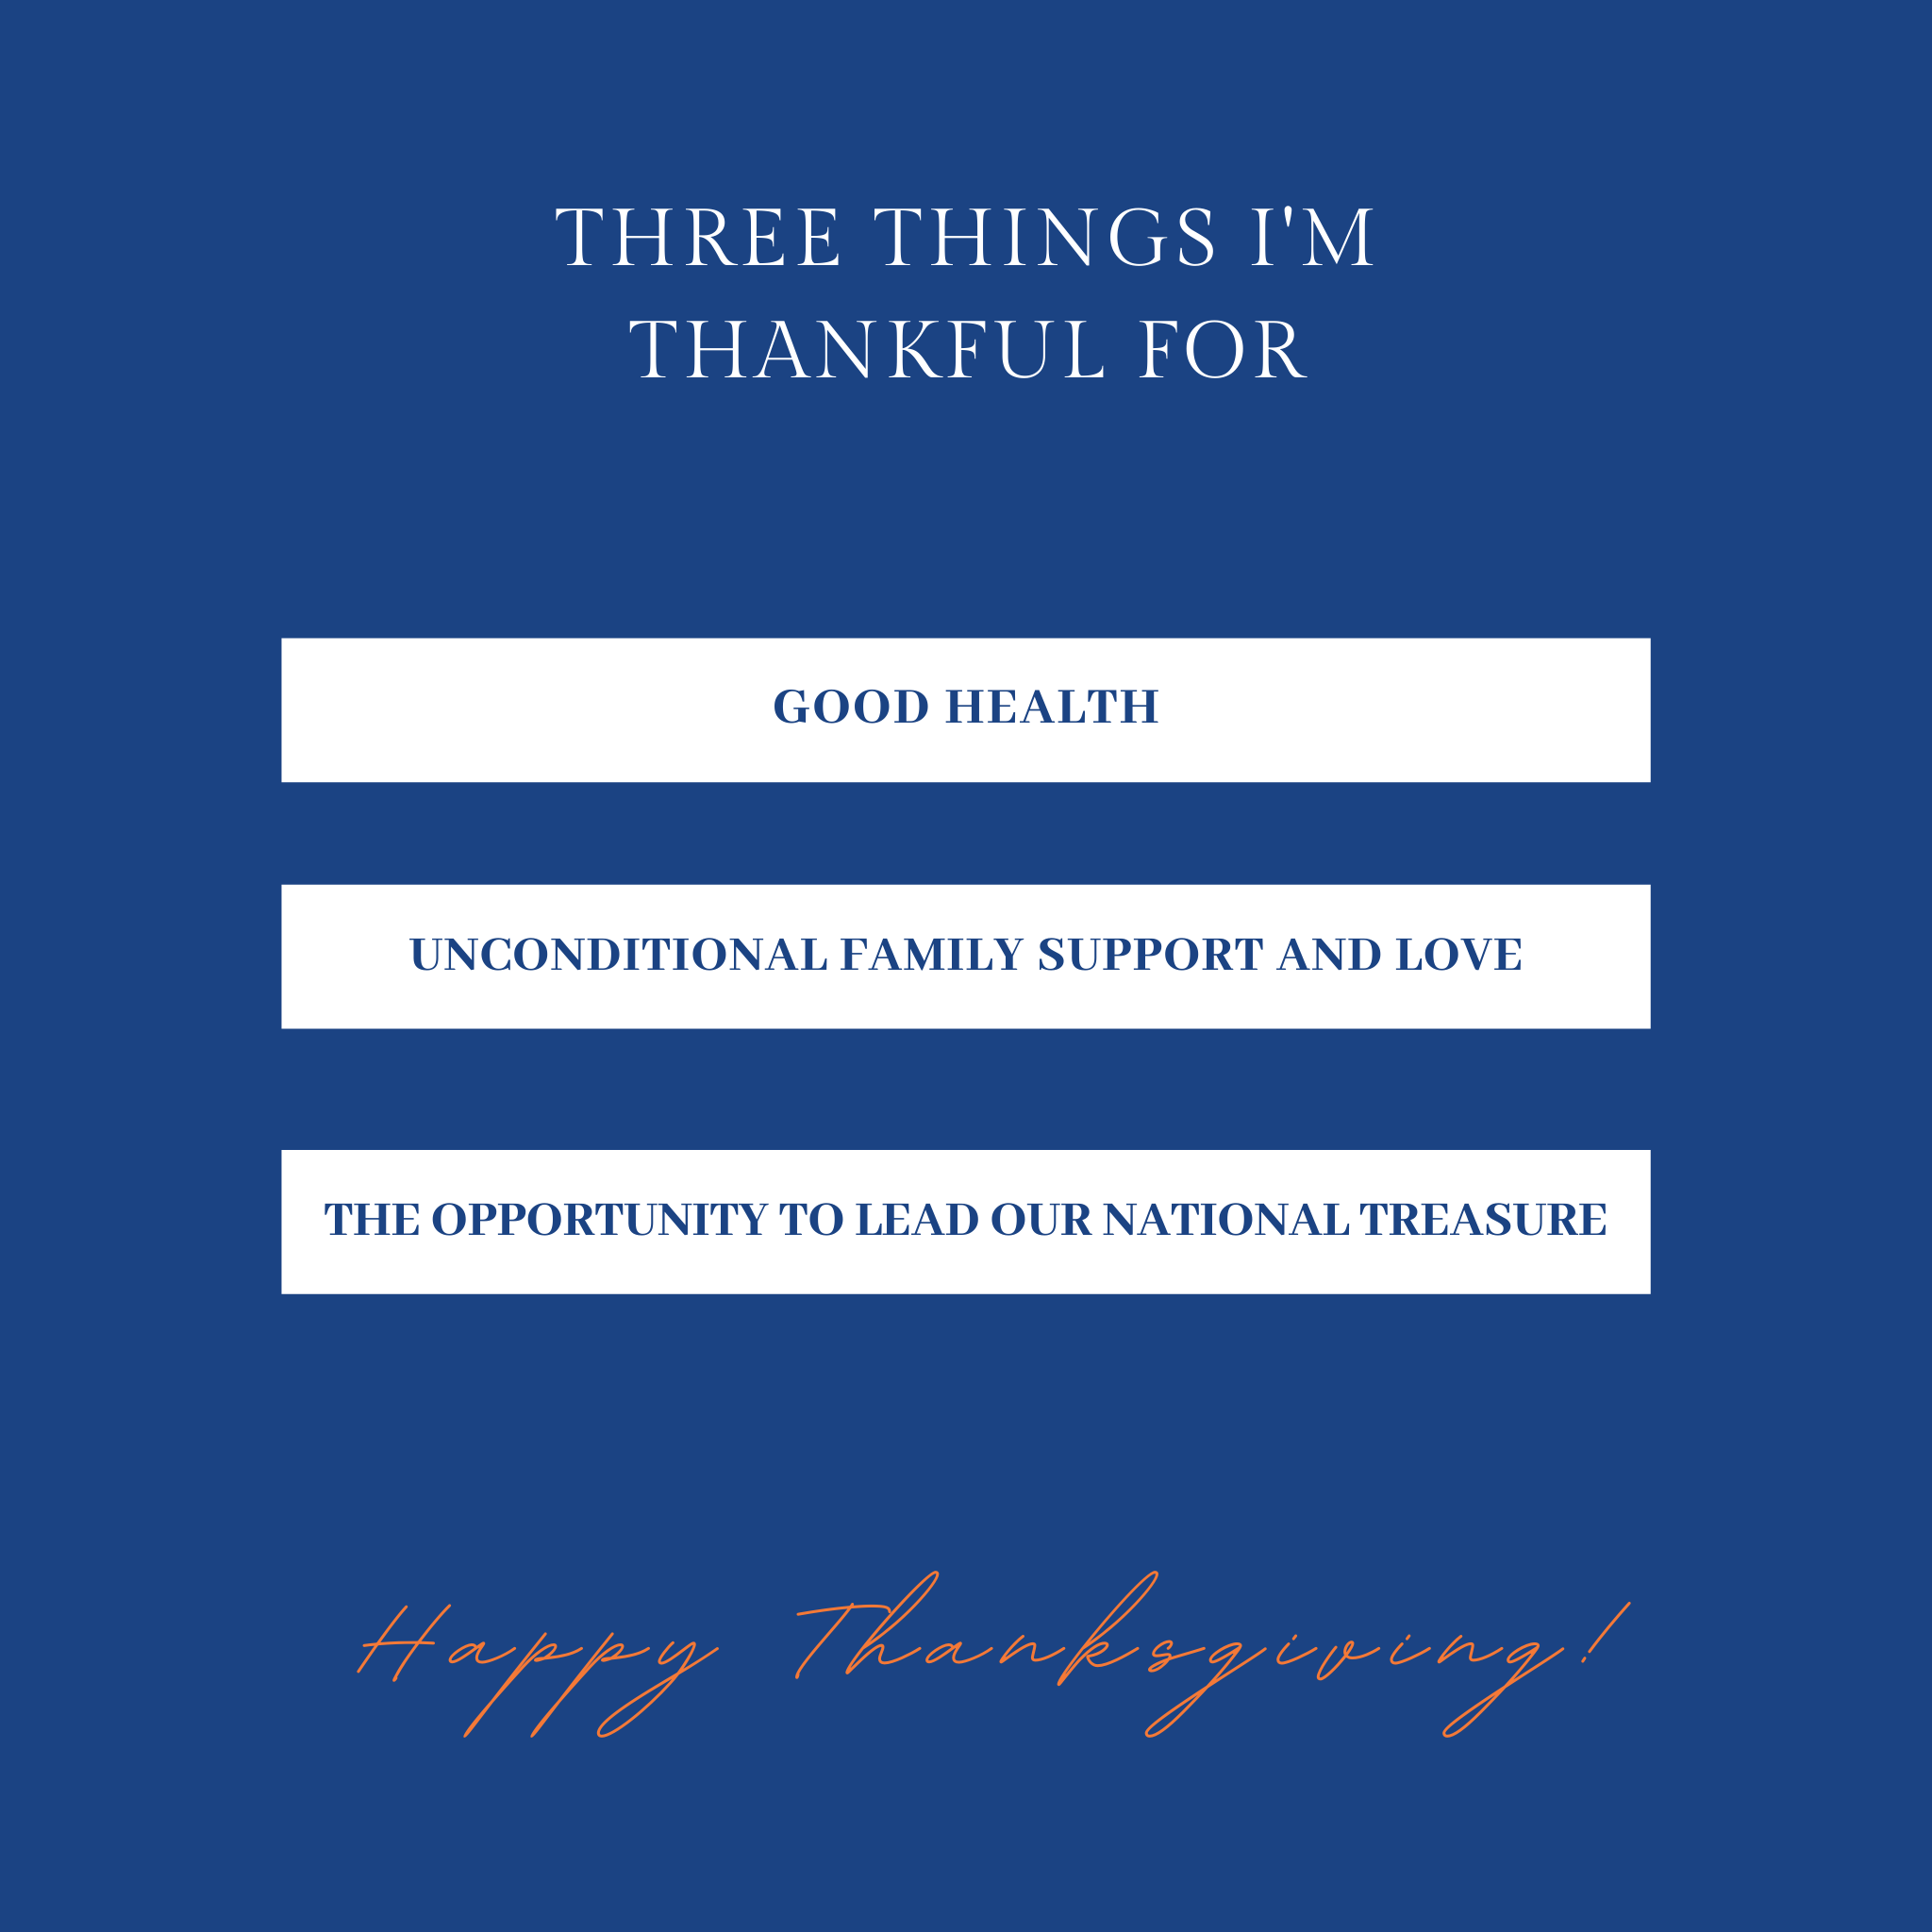 3 things president wilson is thankful for